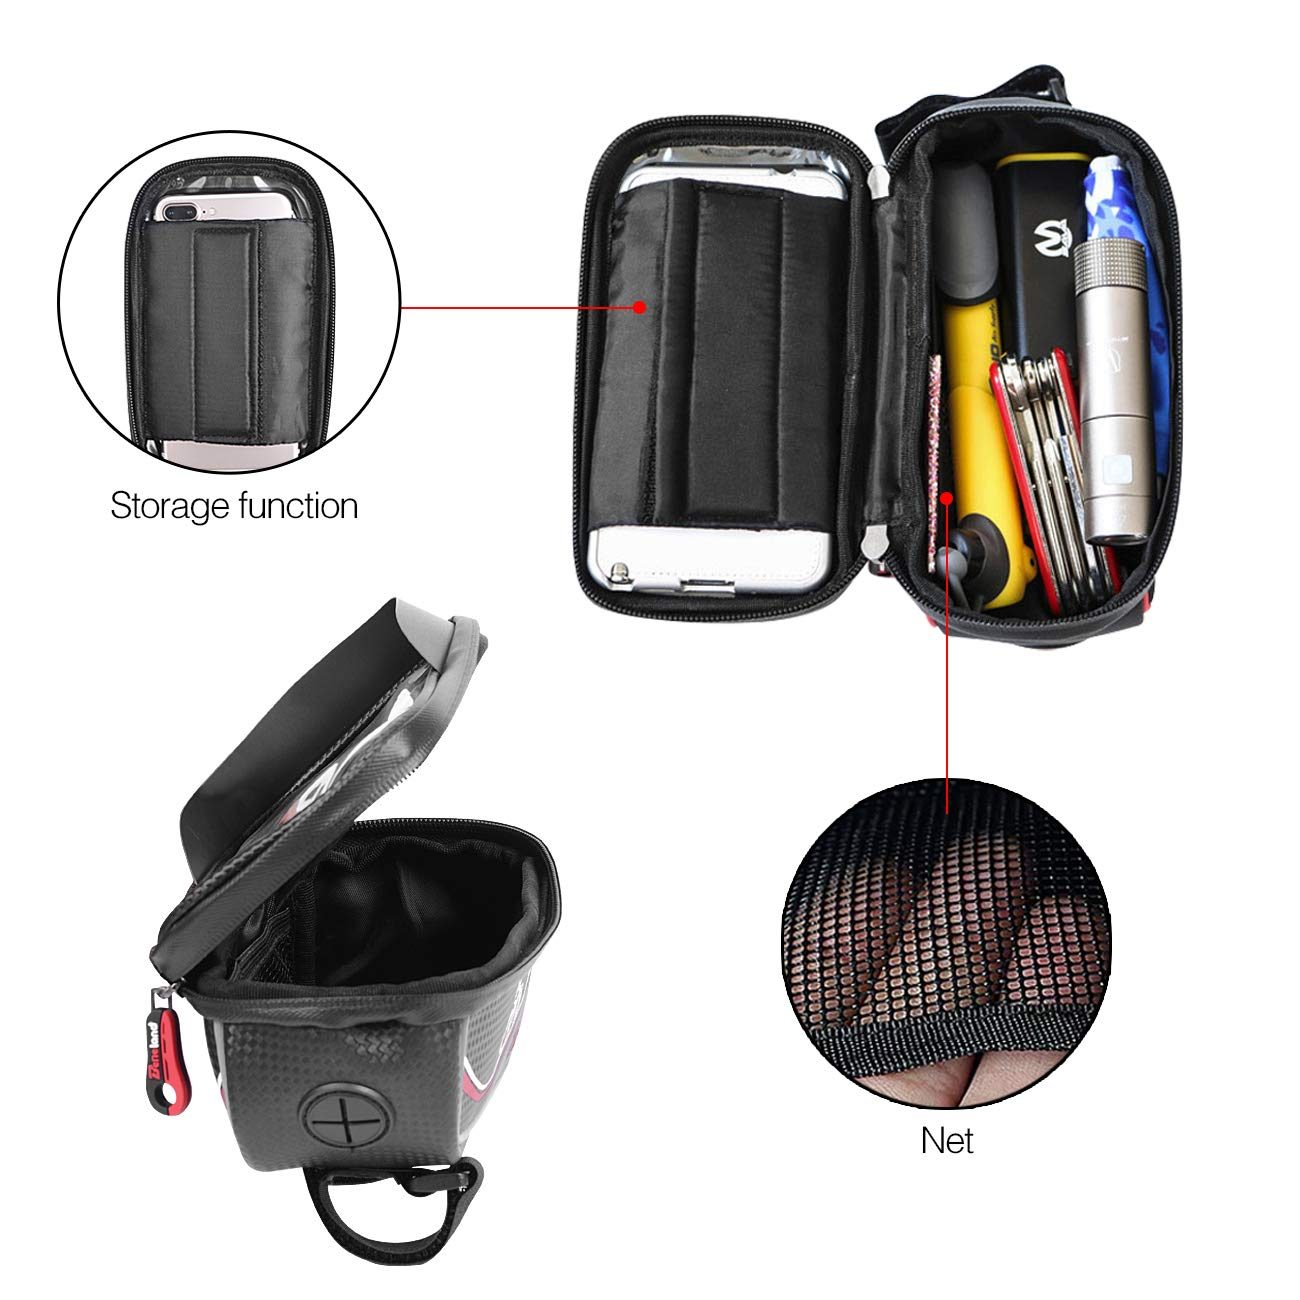 Bike Bag, Frame Bike Bag with Waterproof Touch Screen Phone Holder Case for iPhone X 8 7 6s 6 plus 5s 5/Samsung Galaxy s7 s6 note 7 Cellphone Below 6.0 Inch by Beneland (Image #6)